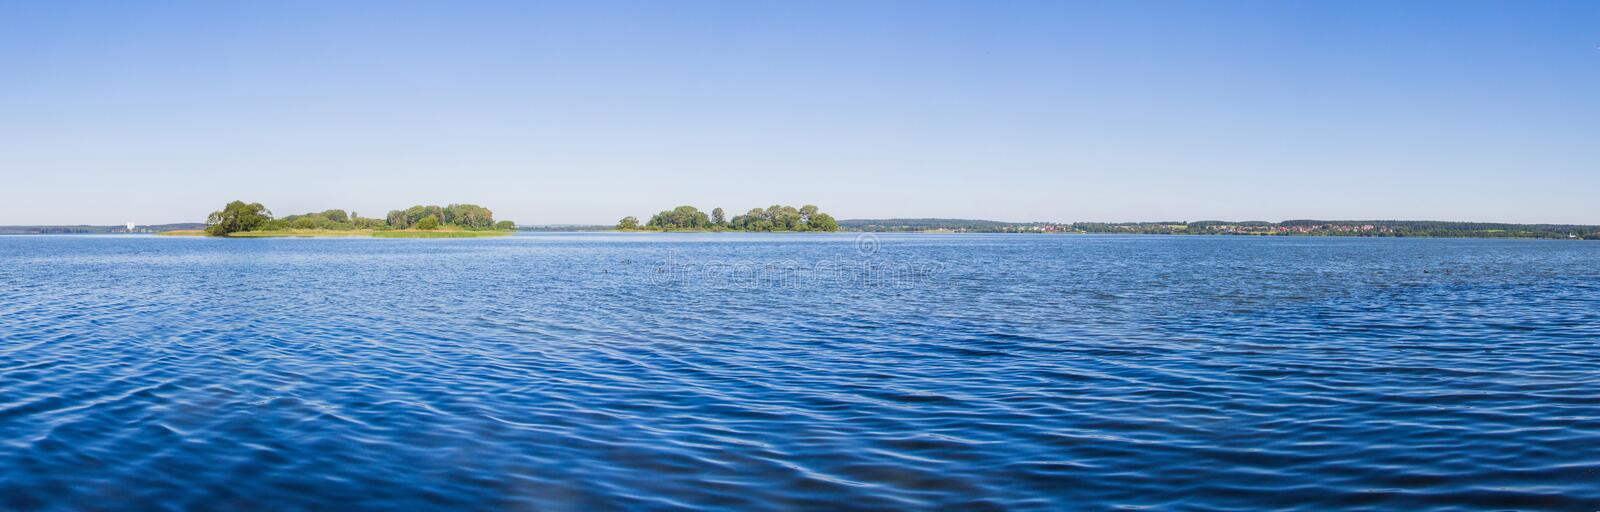 Landscape, bright day. Trees, water, bright sky stock image